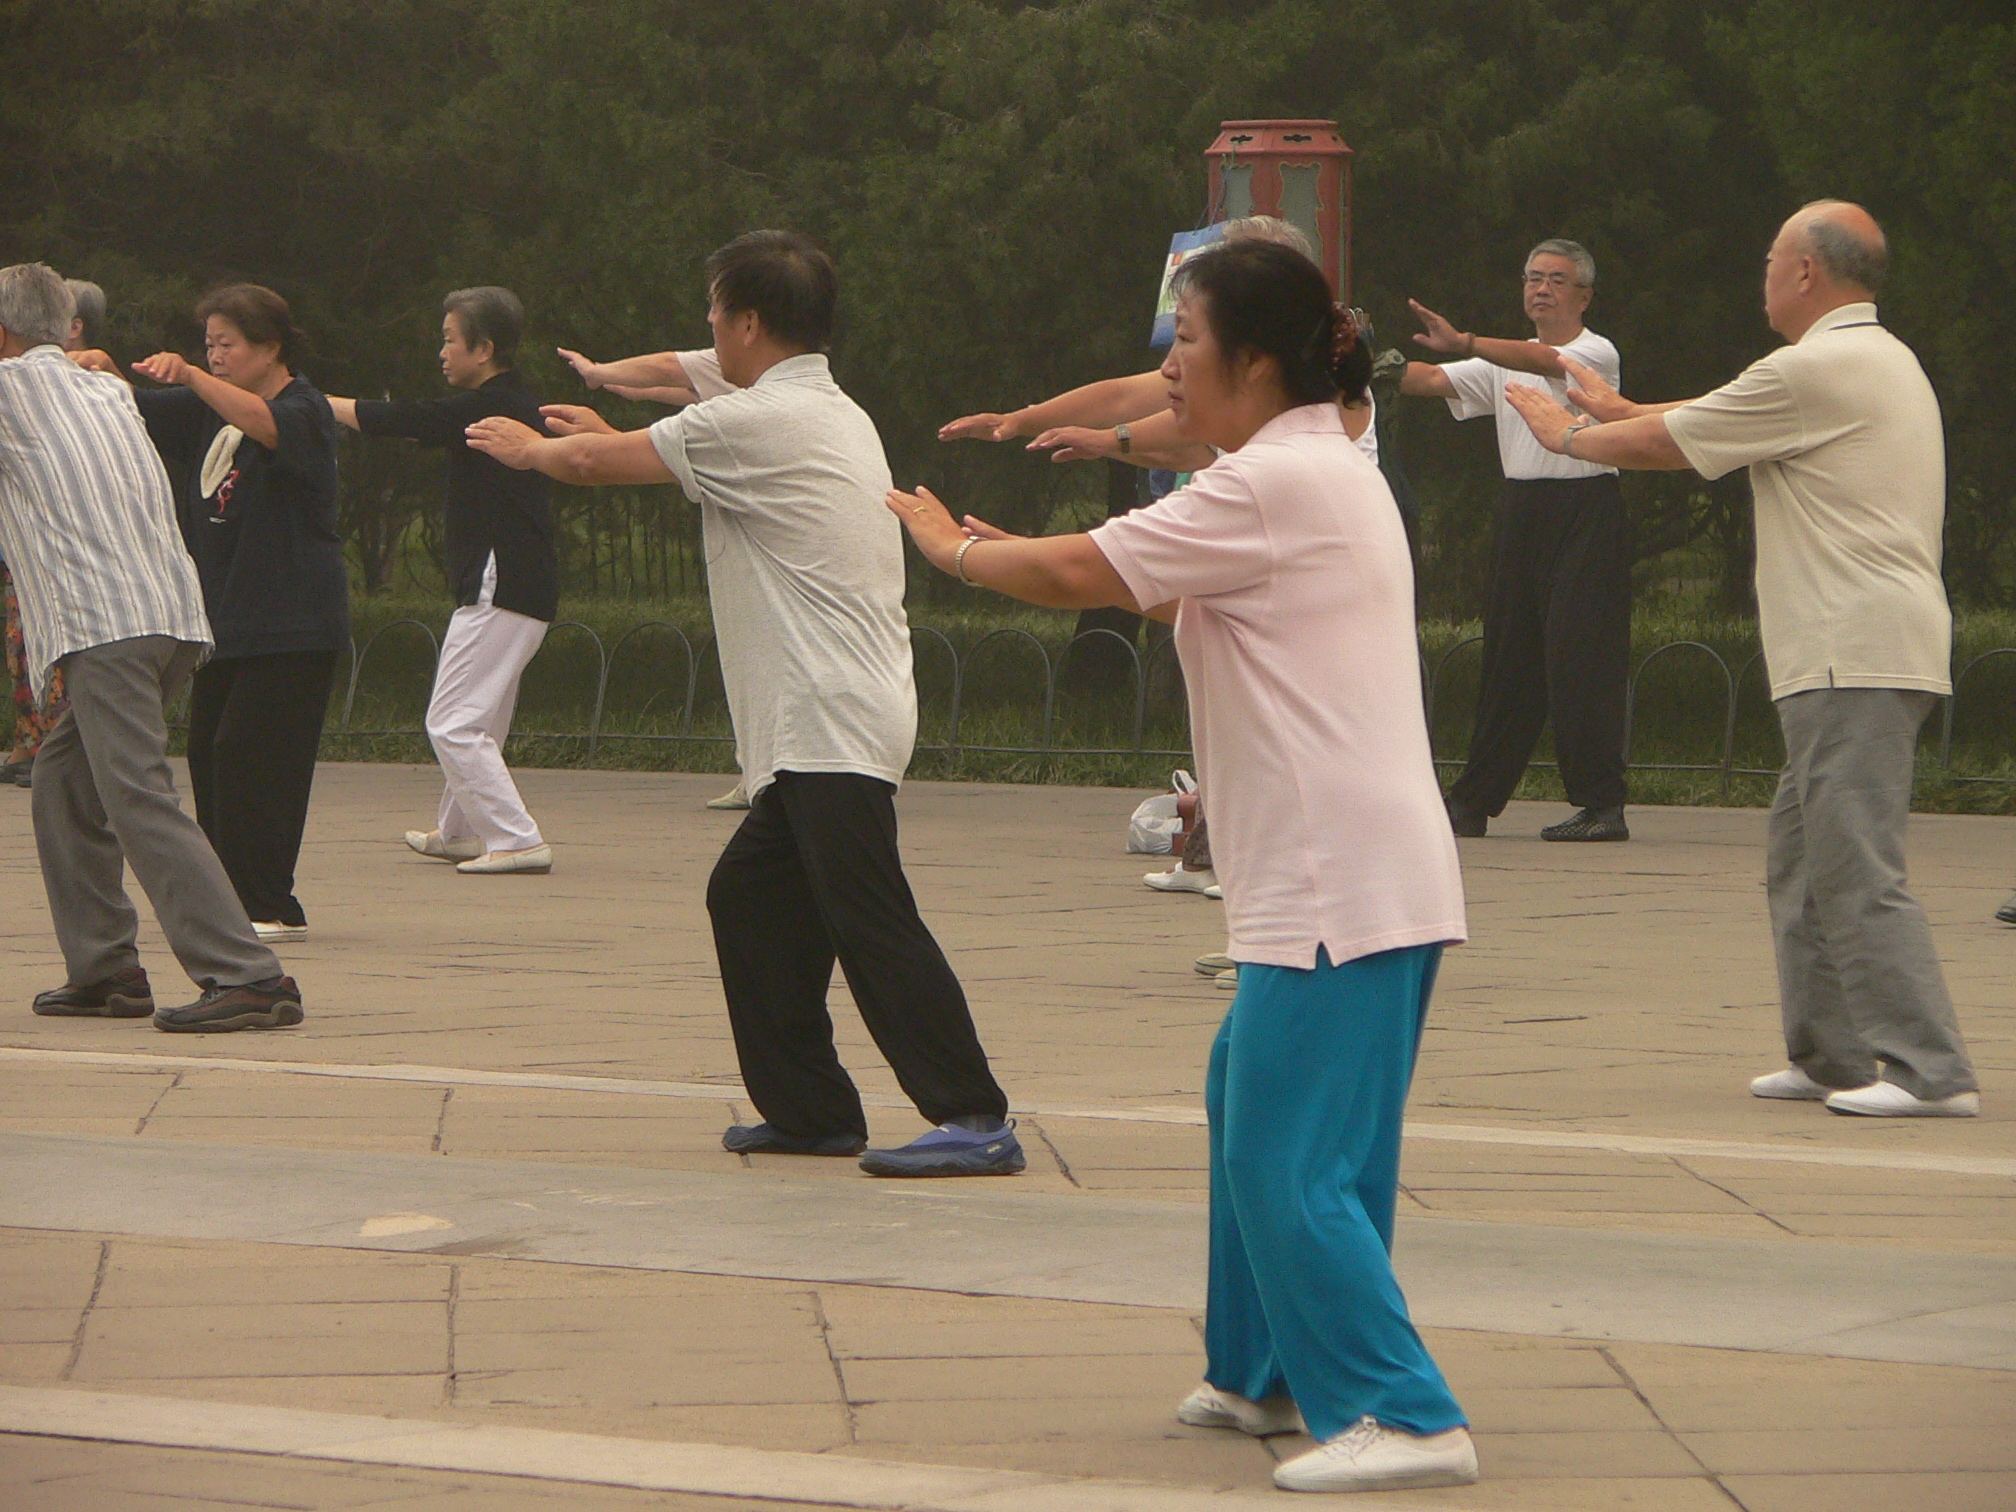 benefits of learning tai chi We've done some research of our own to learn more about the benefits of tai chi for people with lung disease origins of tai chi even though the history of tai chi is not well-known, it is known that ancient chinese astronomers named the martial art tai chi, which means supreme ultimate, to describe the cosmic forces.